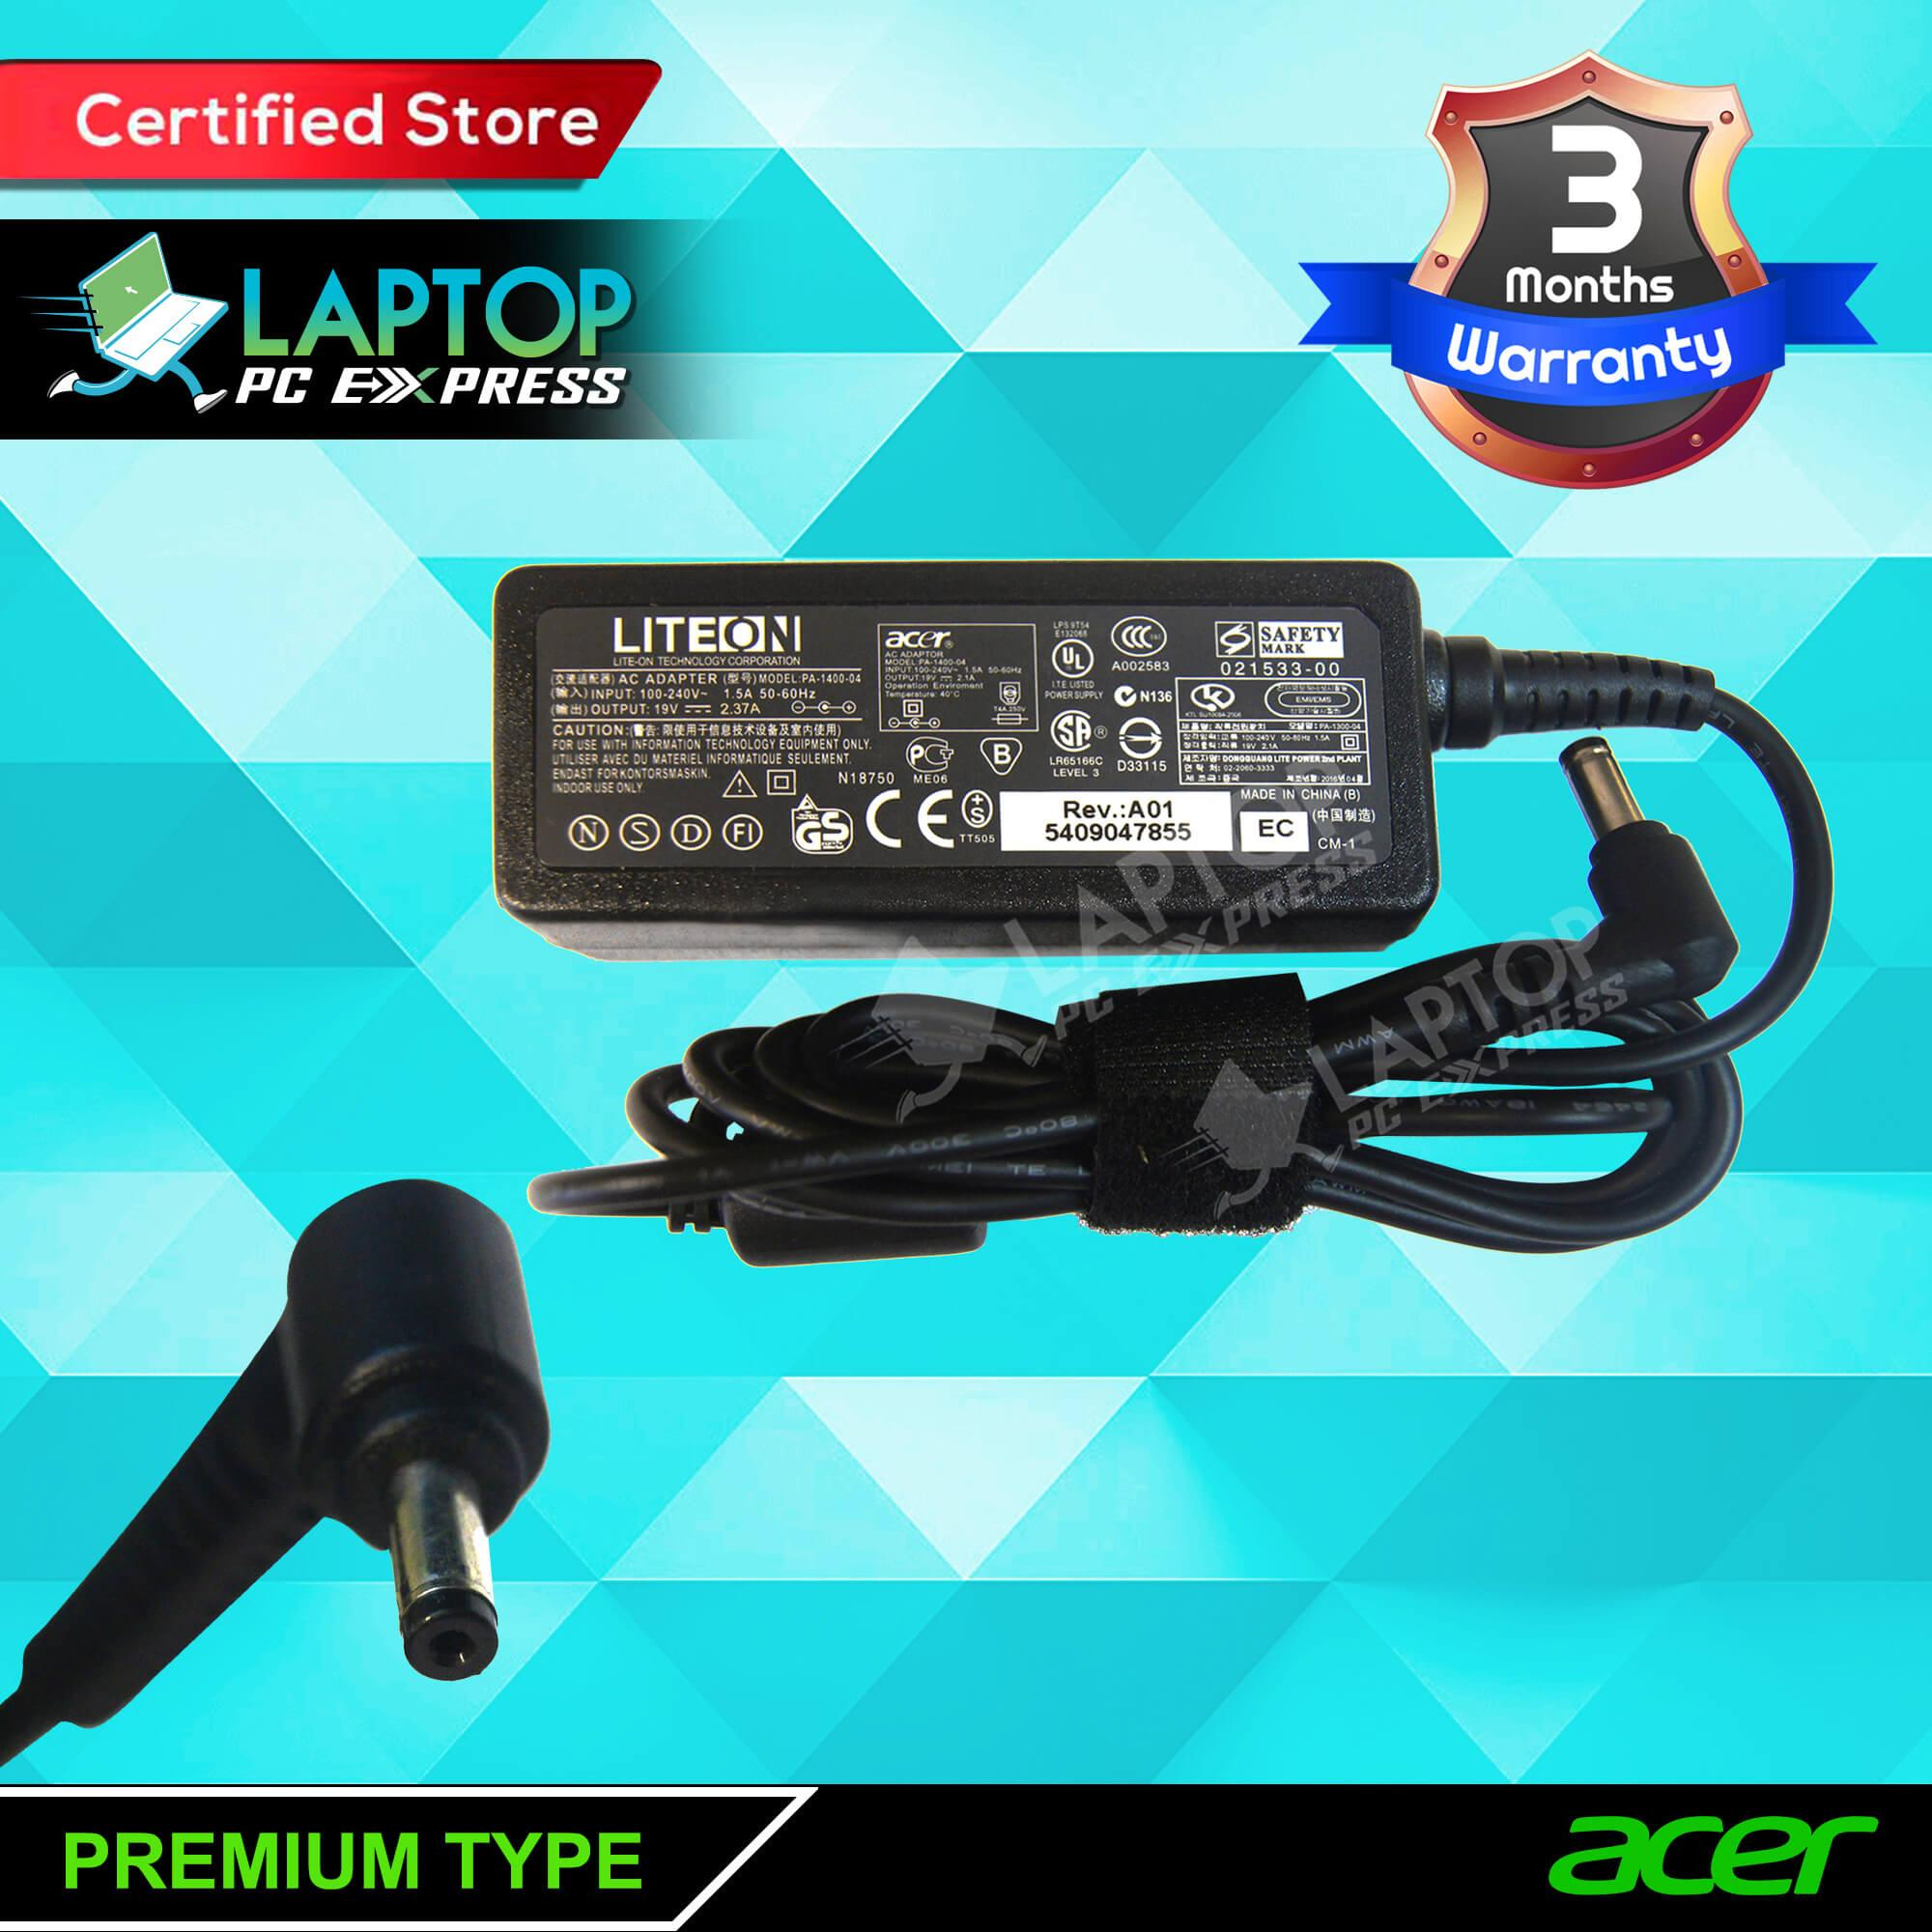 Acer Computer Accessories Philippines Pc For Sale Keyboard Laptop Aspire V5 132 132p E3 111 E11 Charger Ac Adapter 19v 237a 45w 3011mm Chromebook 13